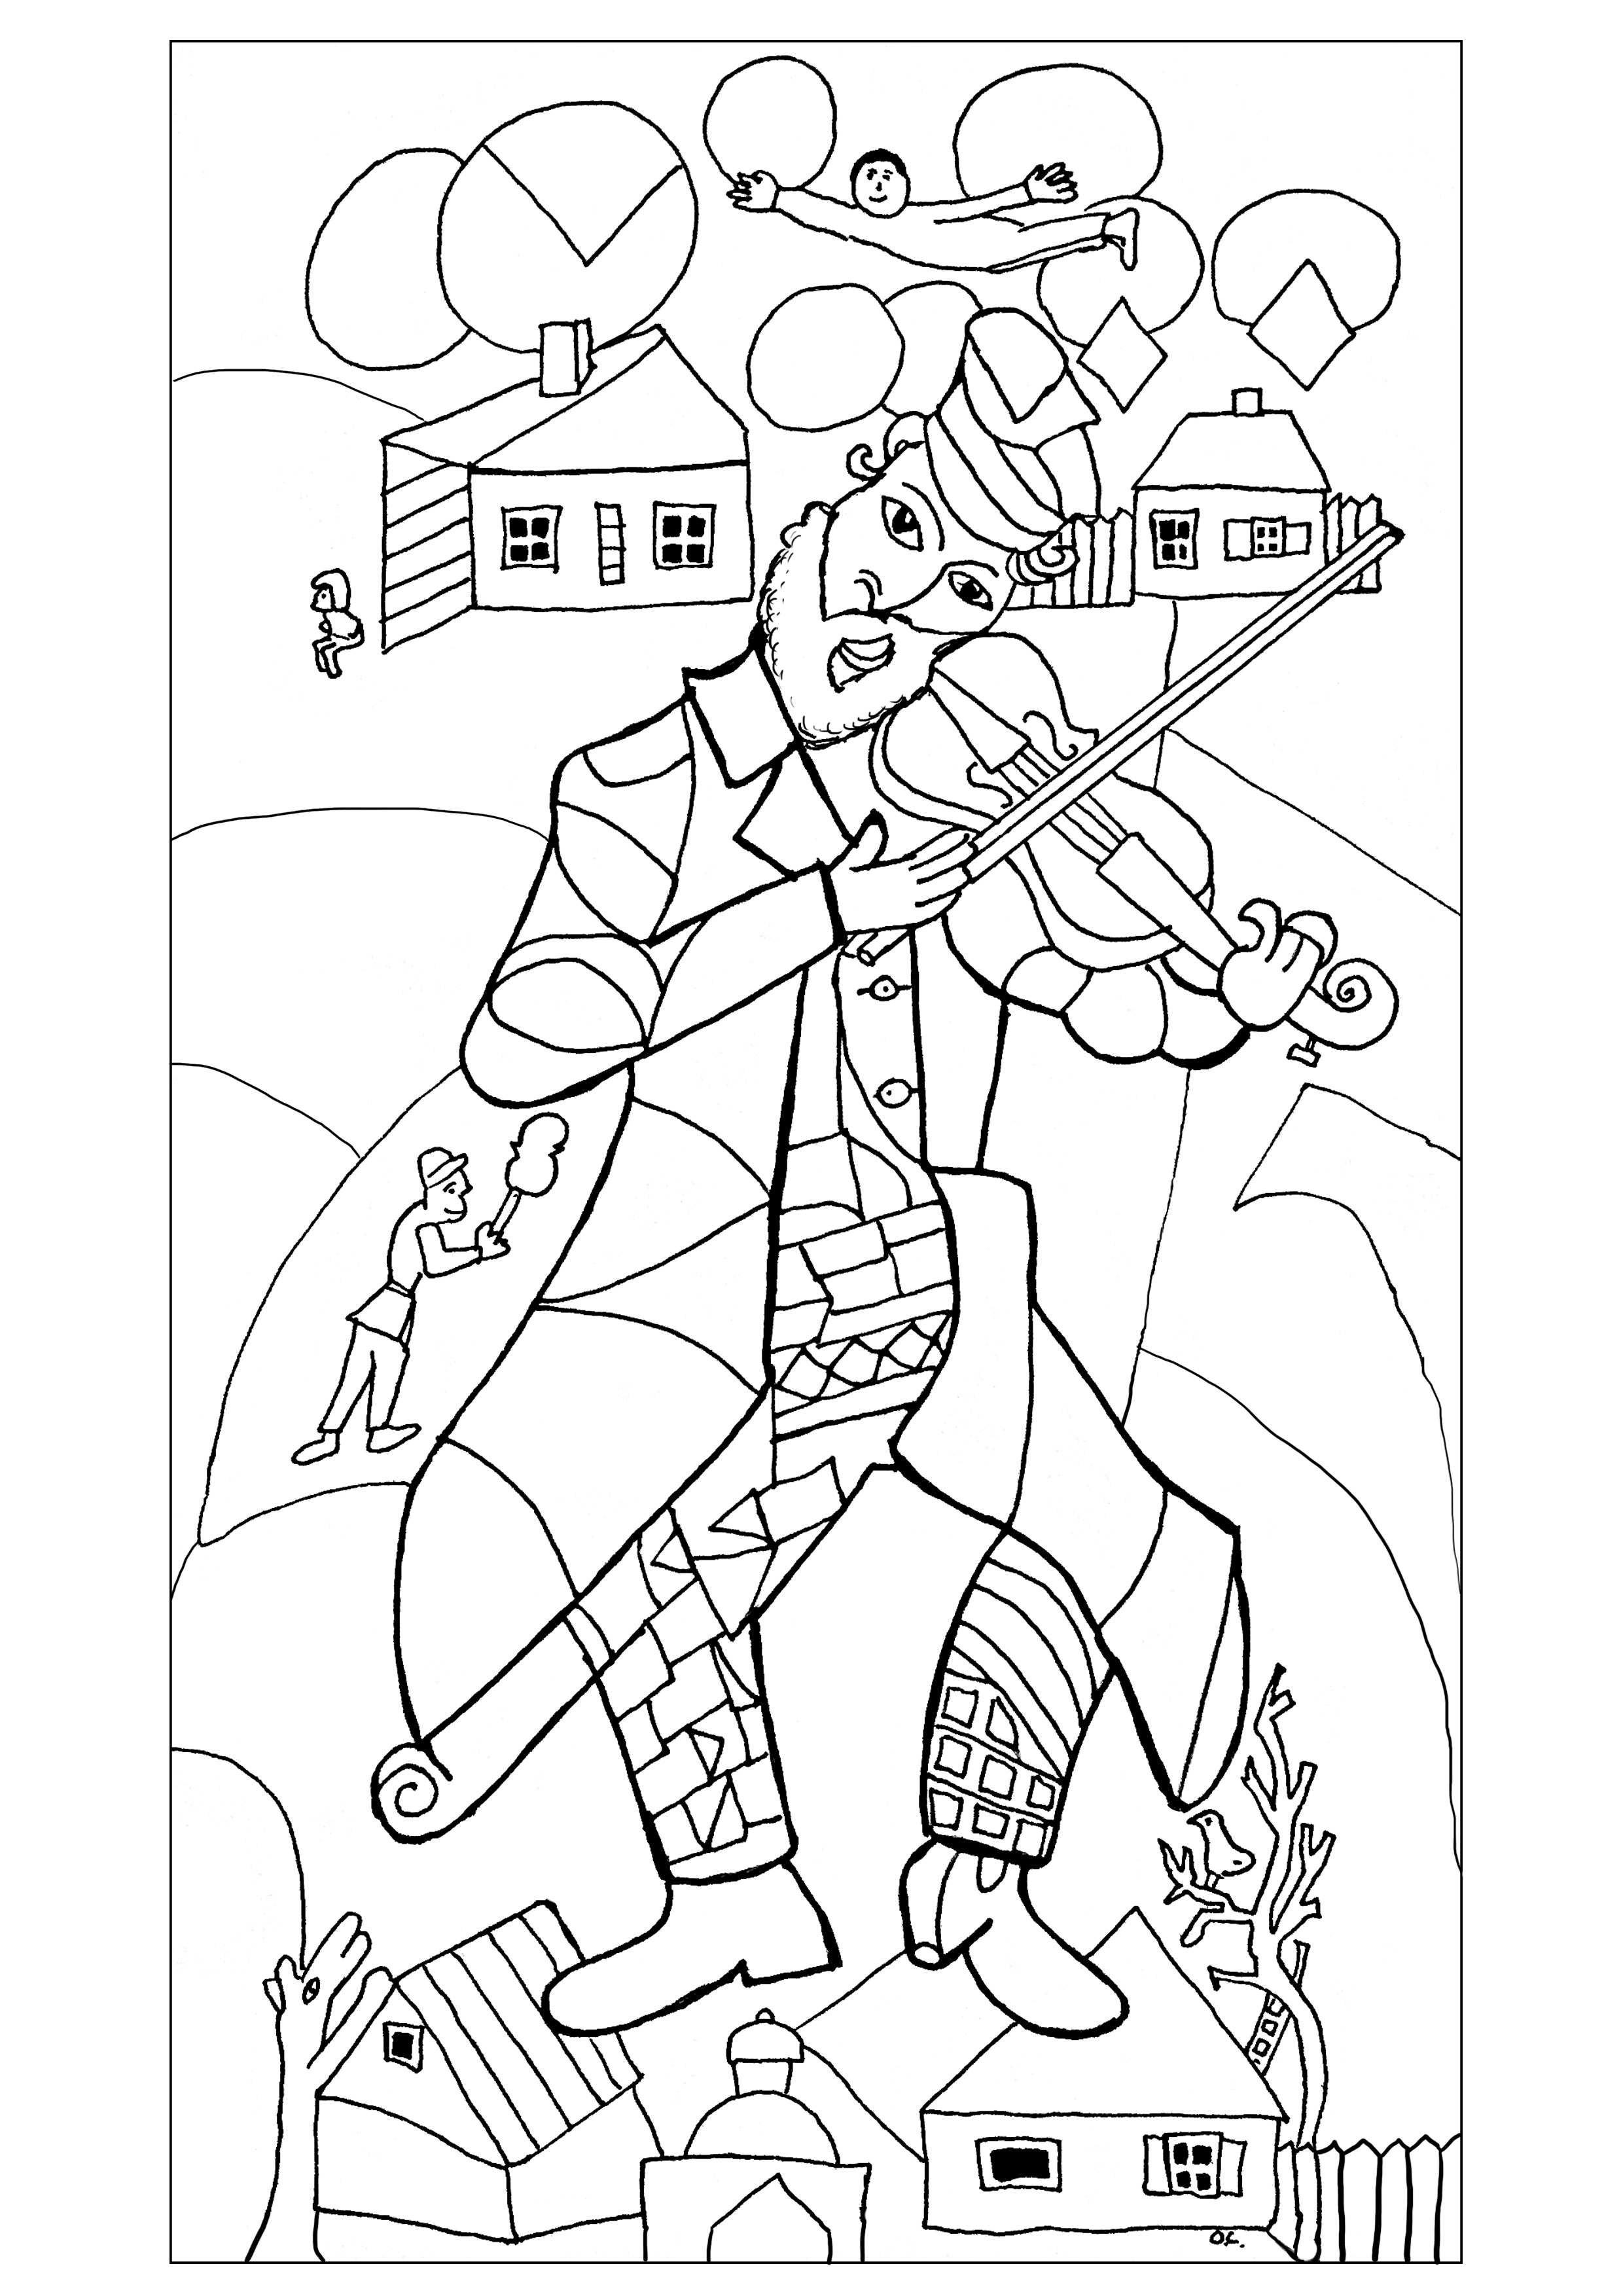 famous painting coloring pages famous art work coloring pages classroom doodles coloring pages famous painting